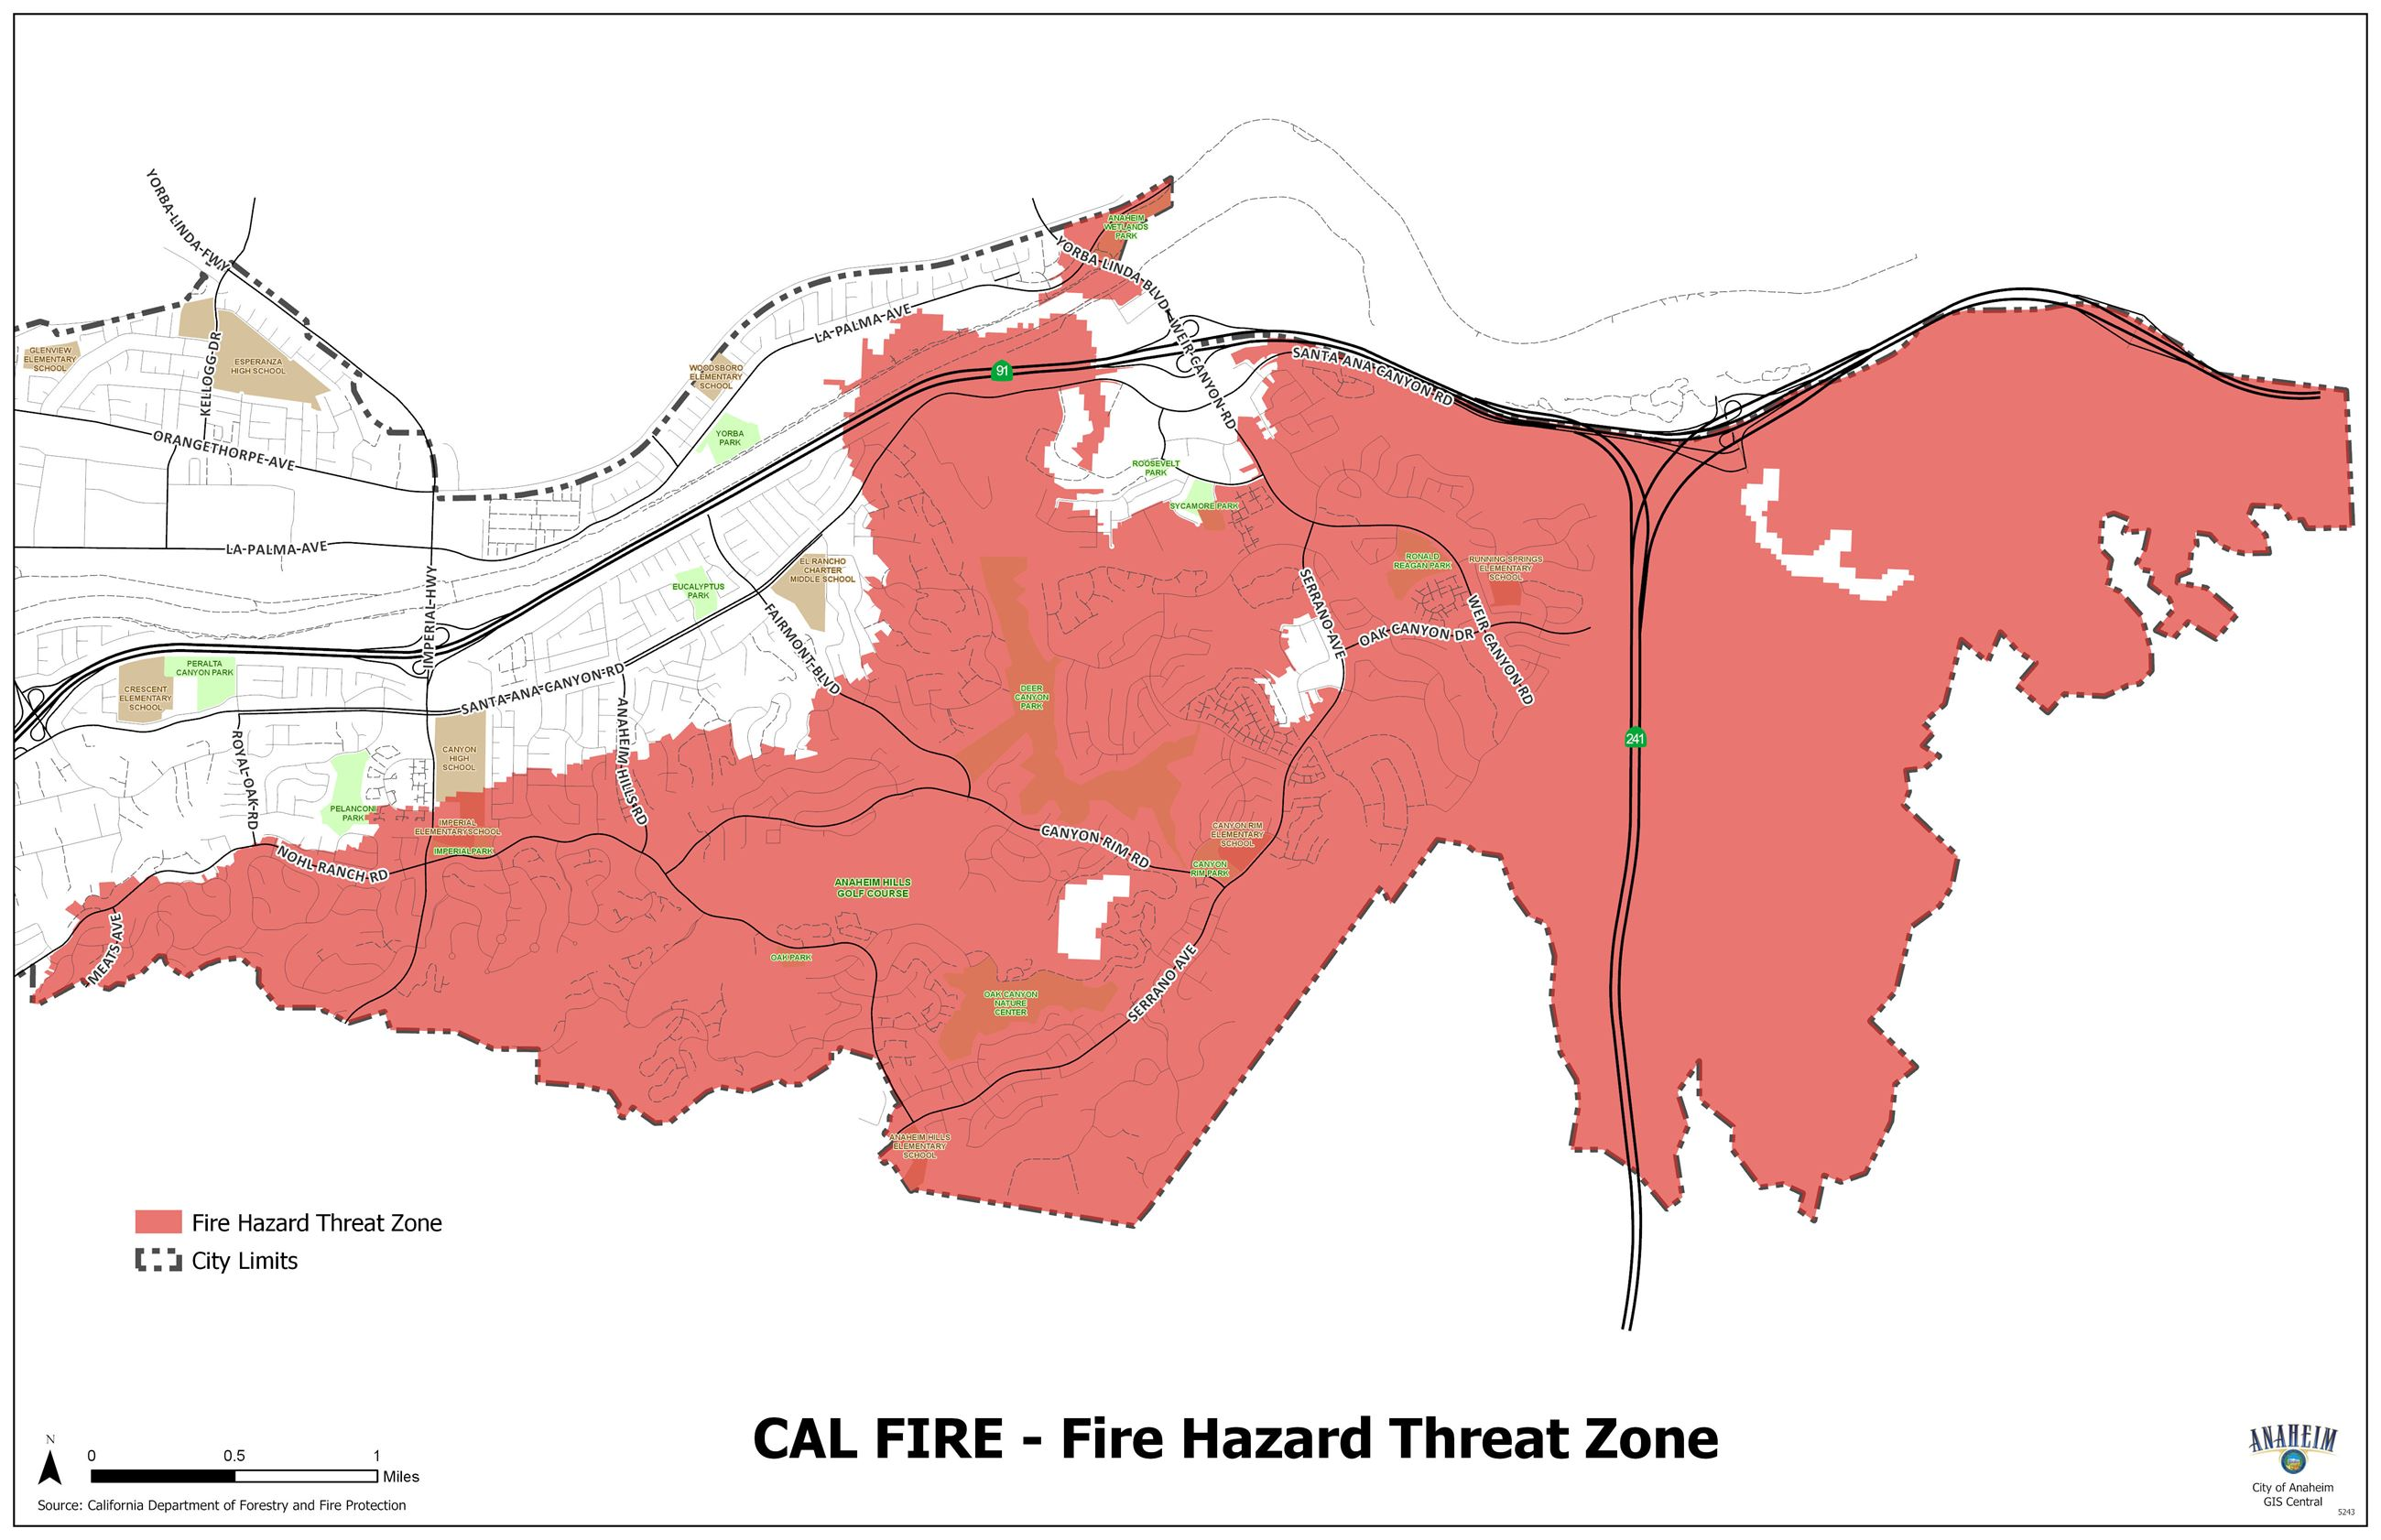 Fire Threat Zones